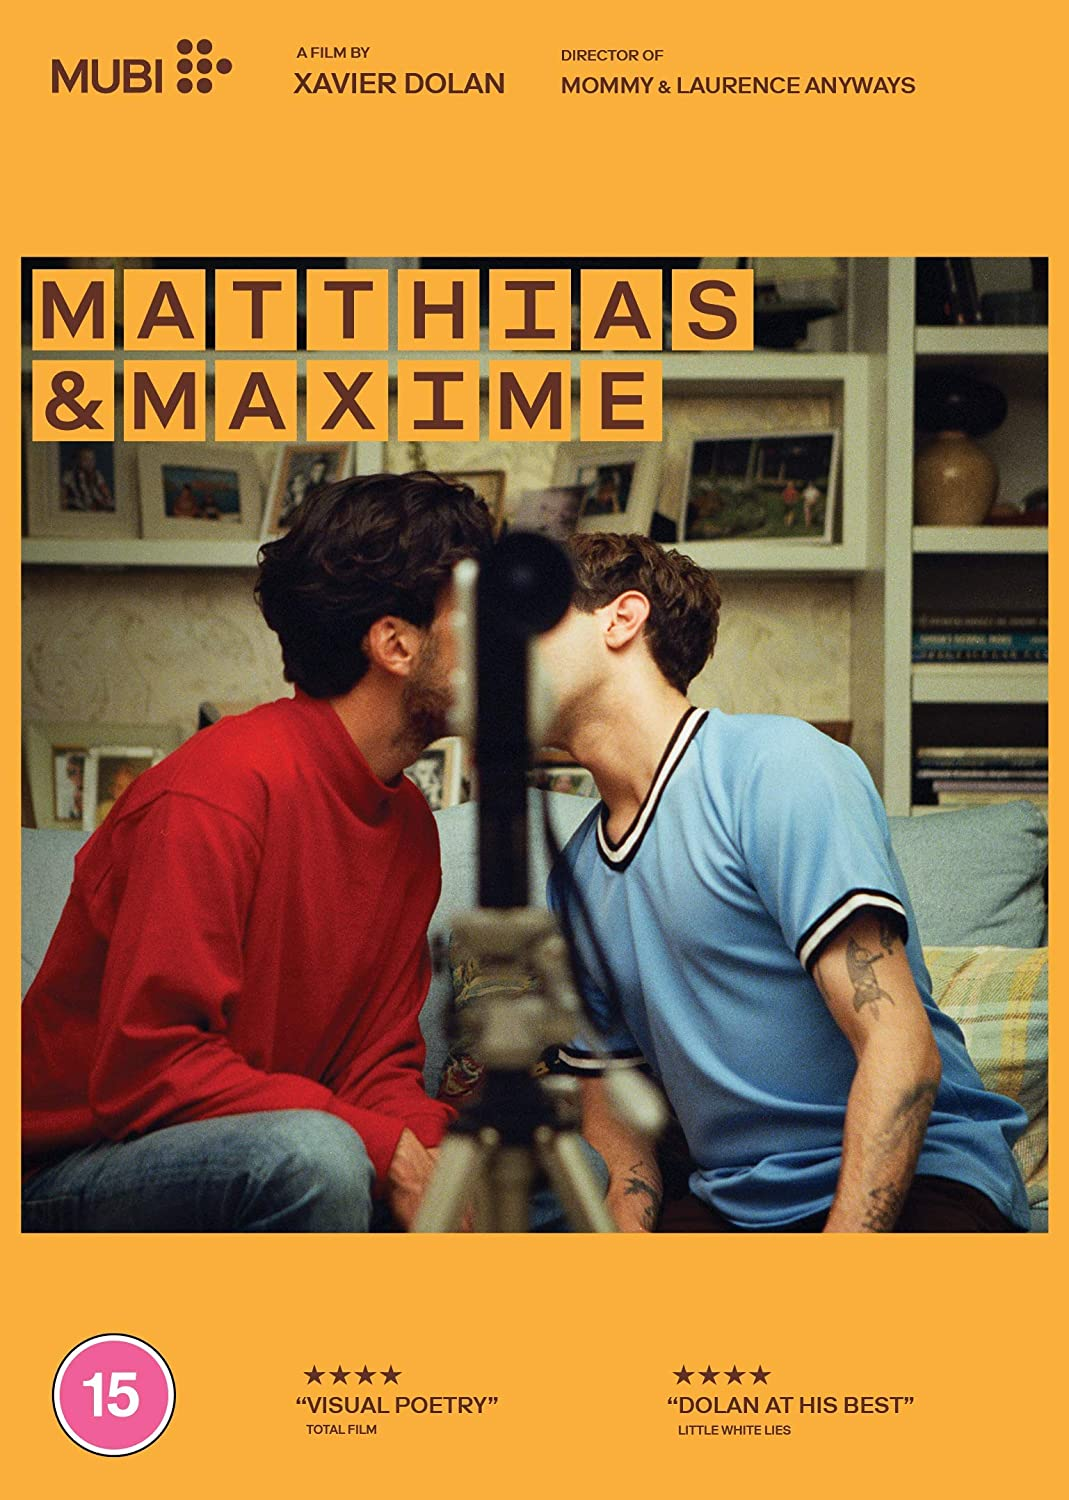 Poster for Matthias & Maxime. The pair kiss with a camera blocking their face.